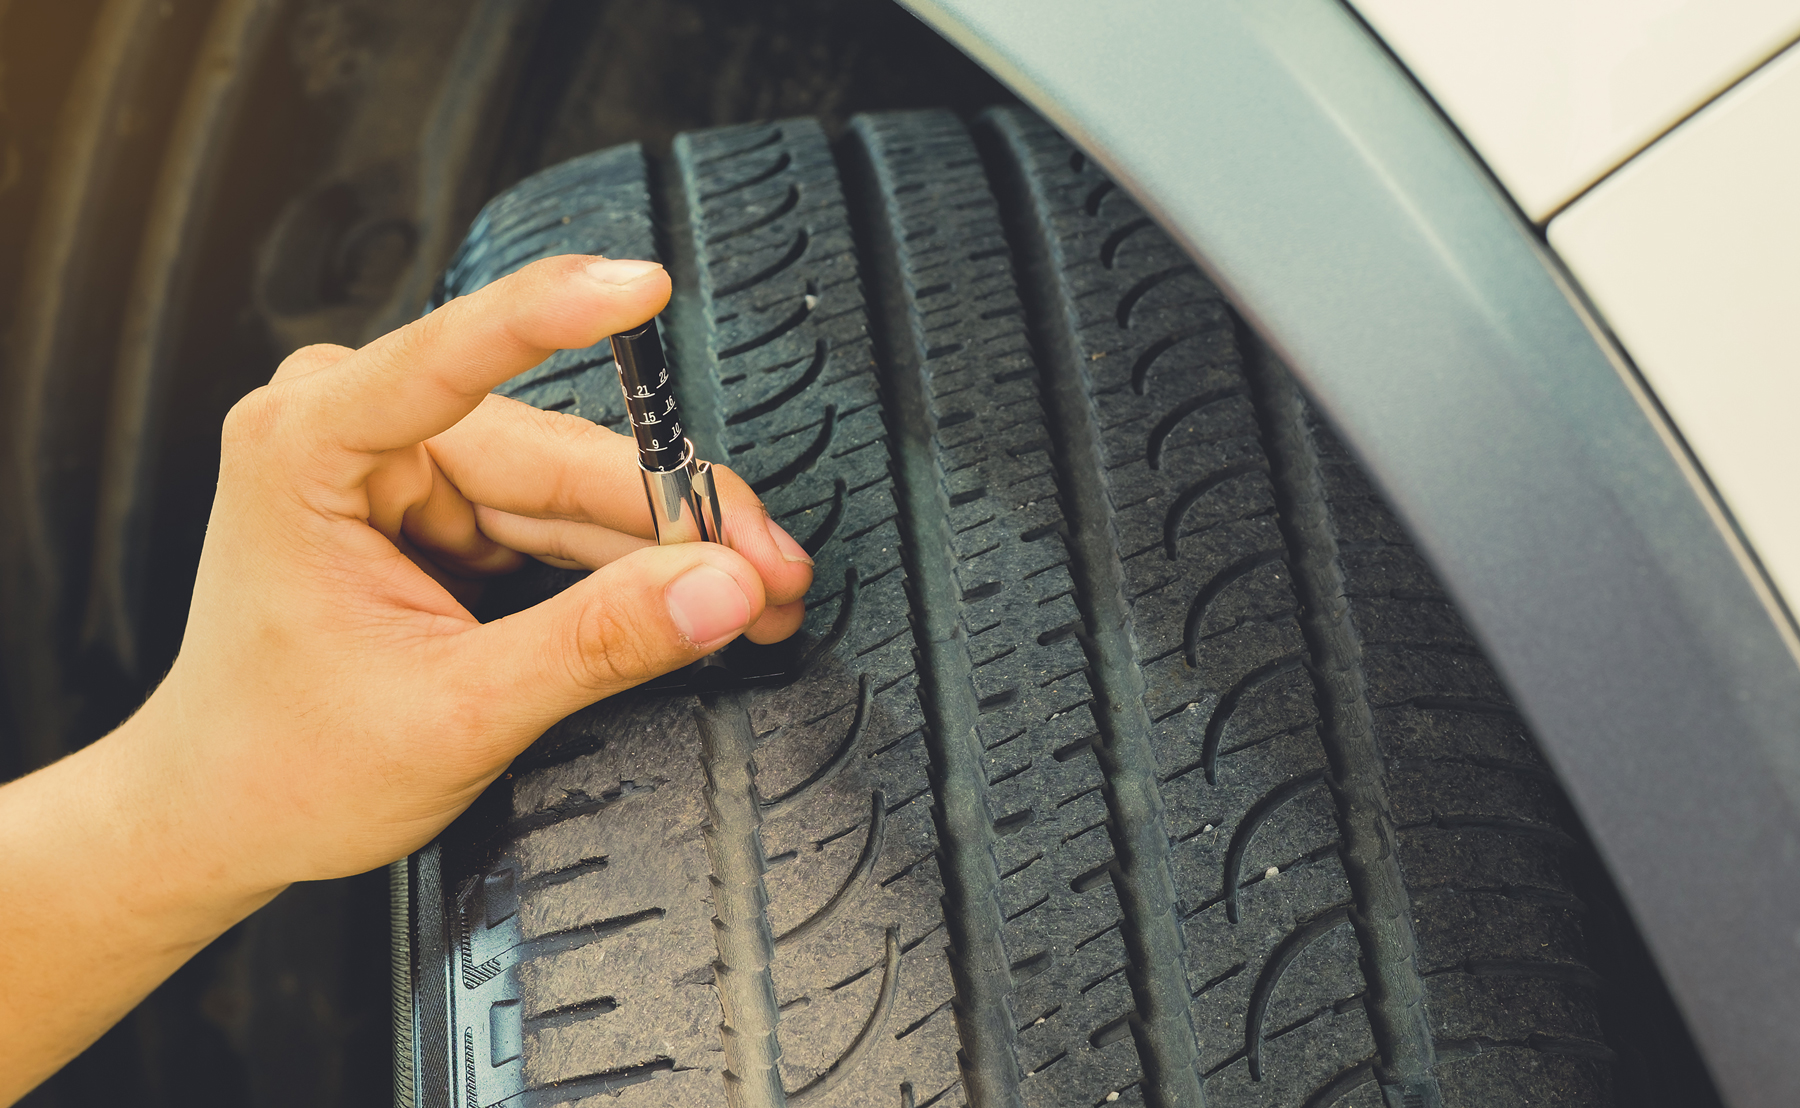 A person using a tool to check the tread depth of a tyre